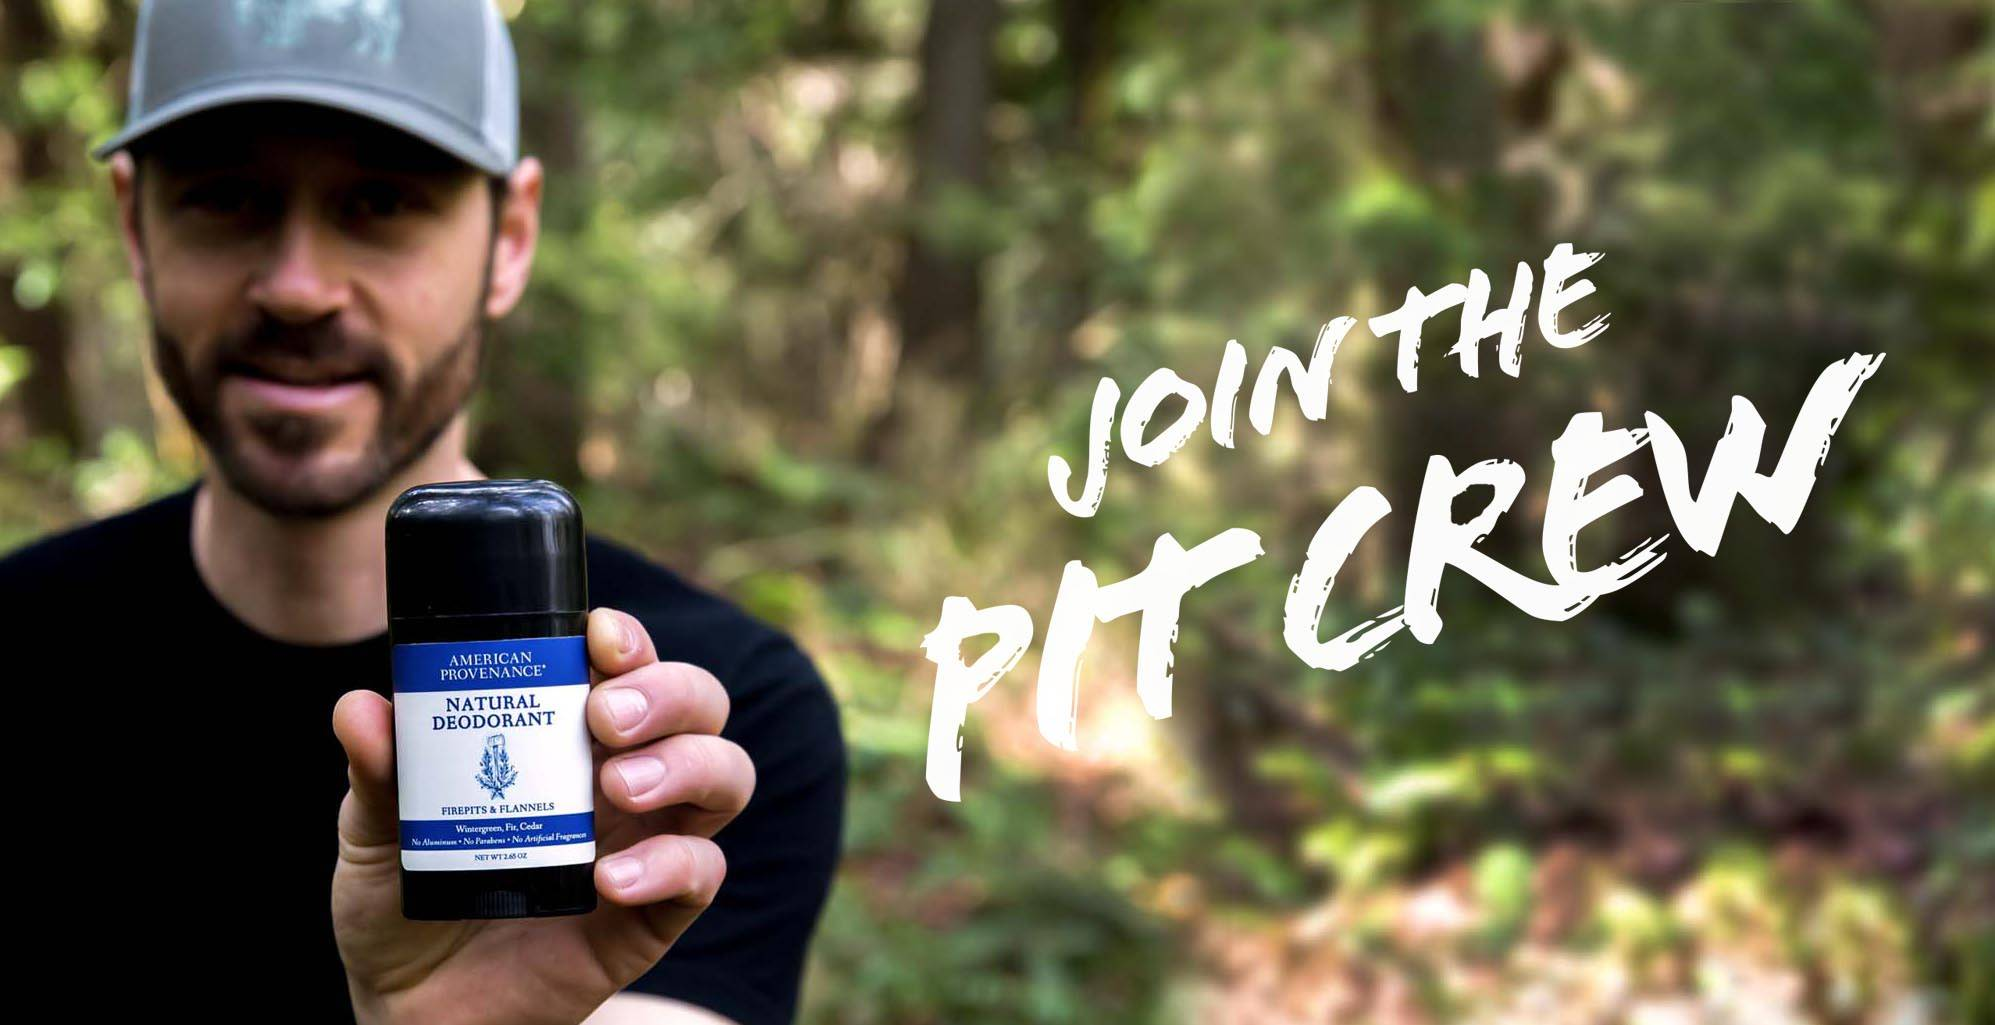 join the pit crew